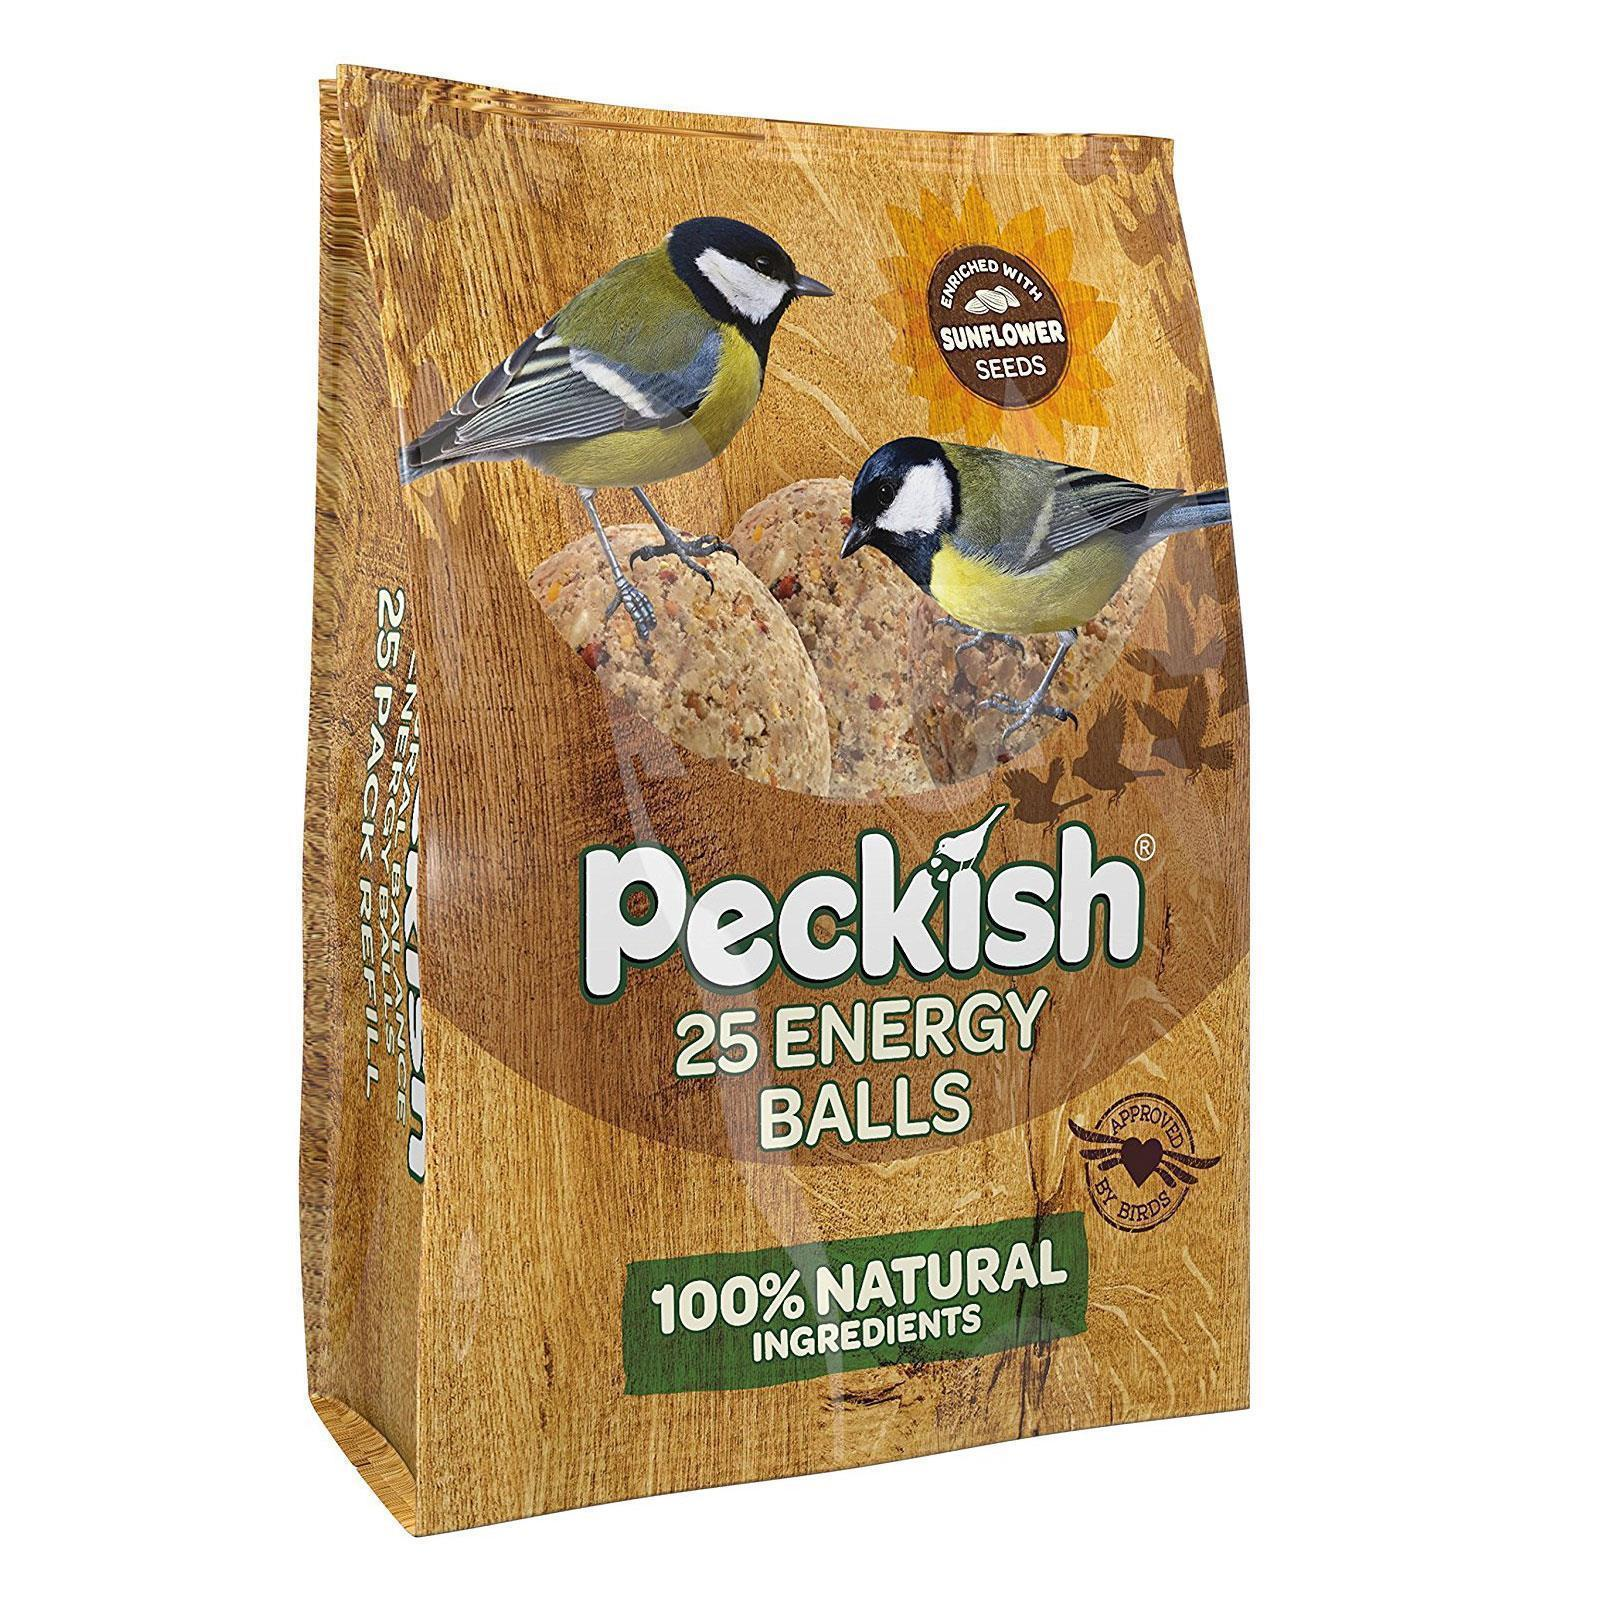 Peckish 25 Natural Balance Energy Suet Fat Balls 2kg Wild Garden Bird Feed